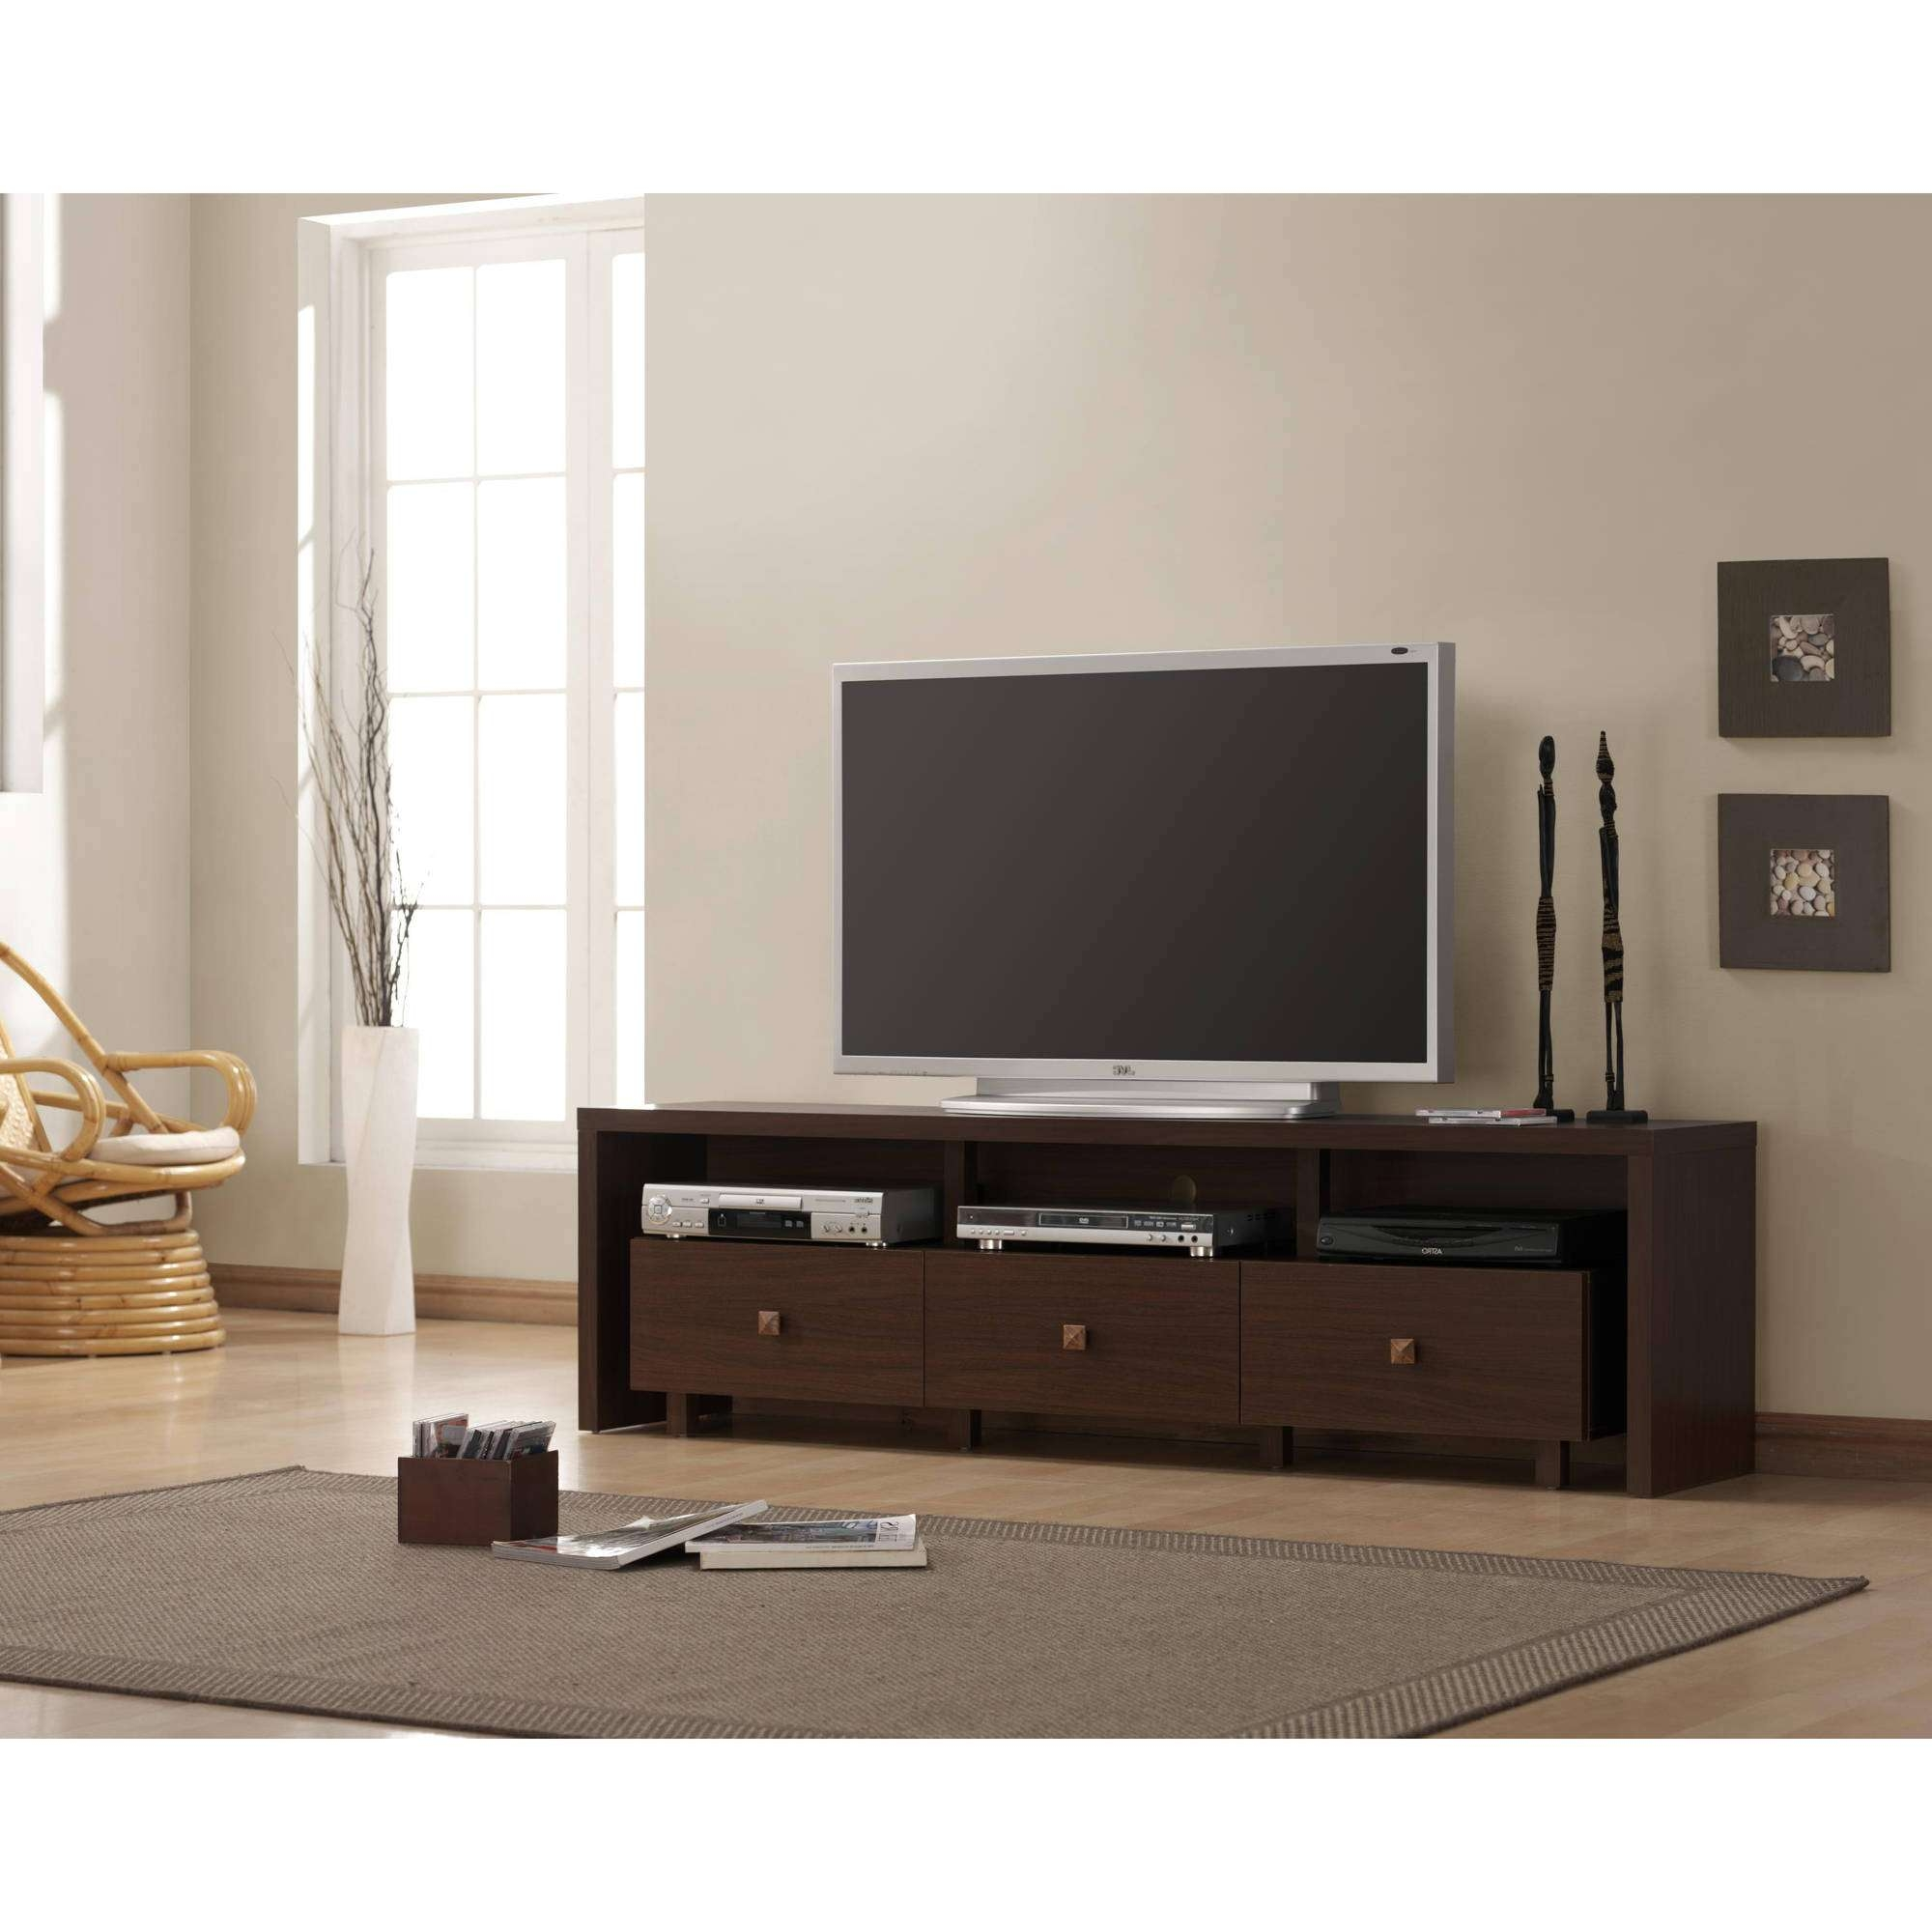 Tempting Click To Change Jenson Tv Stand Pine Value City Furniture Within Tv Cabinets With Storage (View 14 of 20)